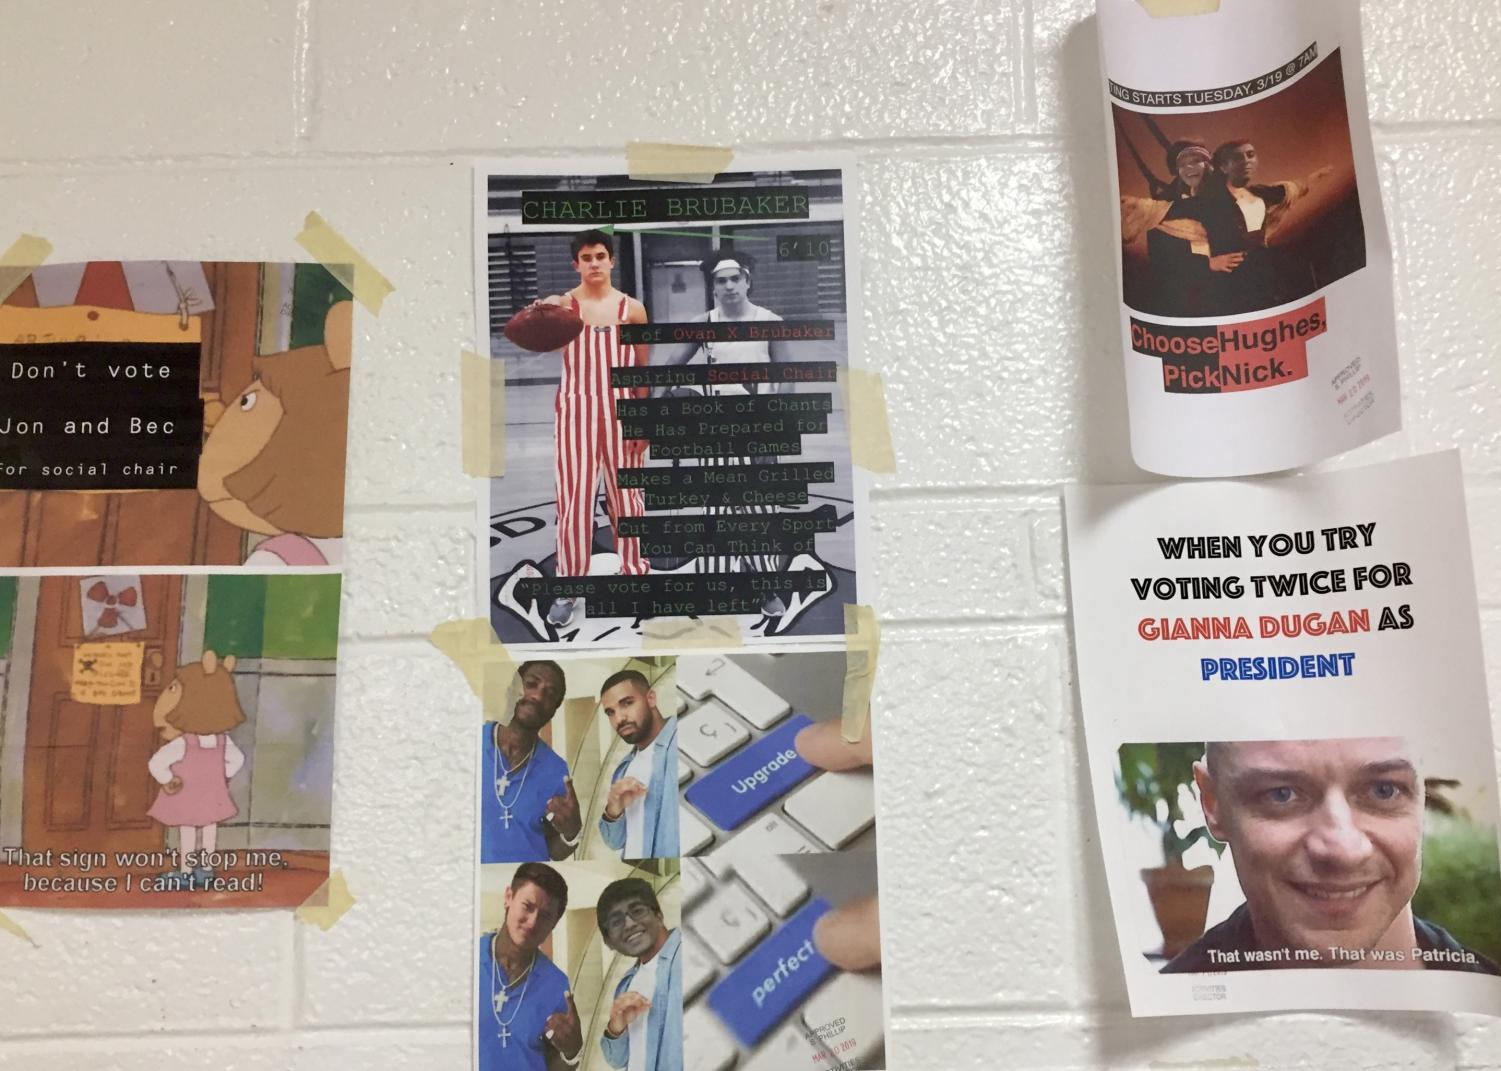 Many students have been campaigning for the election on Tuesday, March 19 by hanging humorous posters around the school.